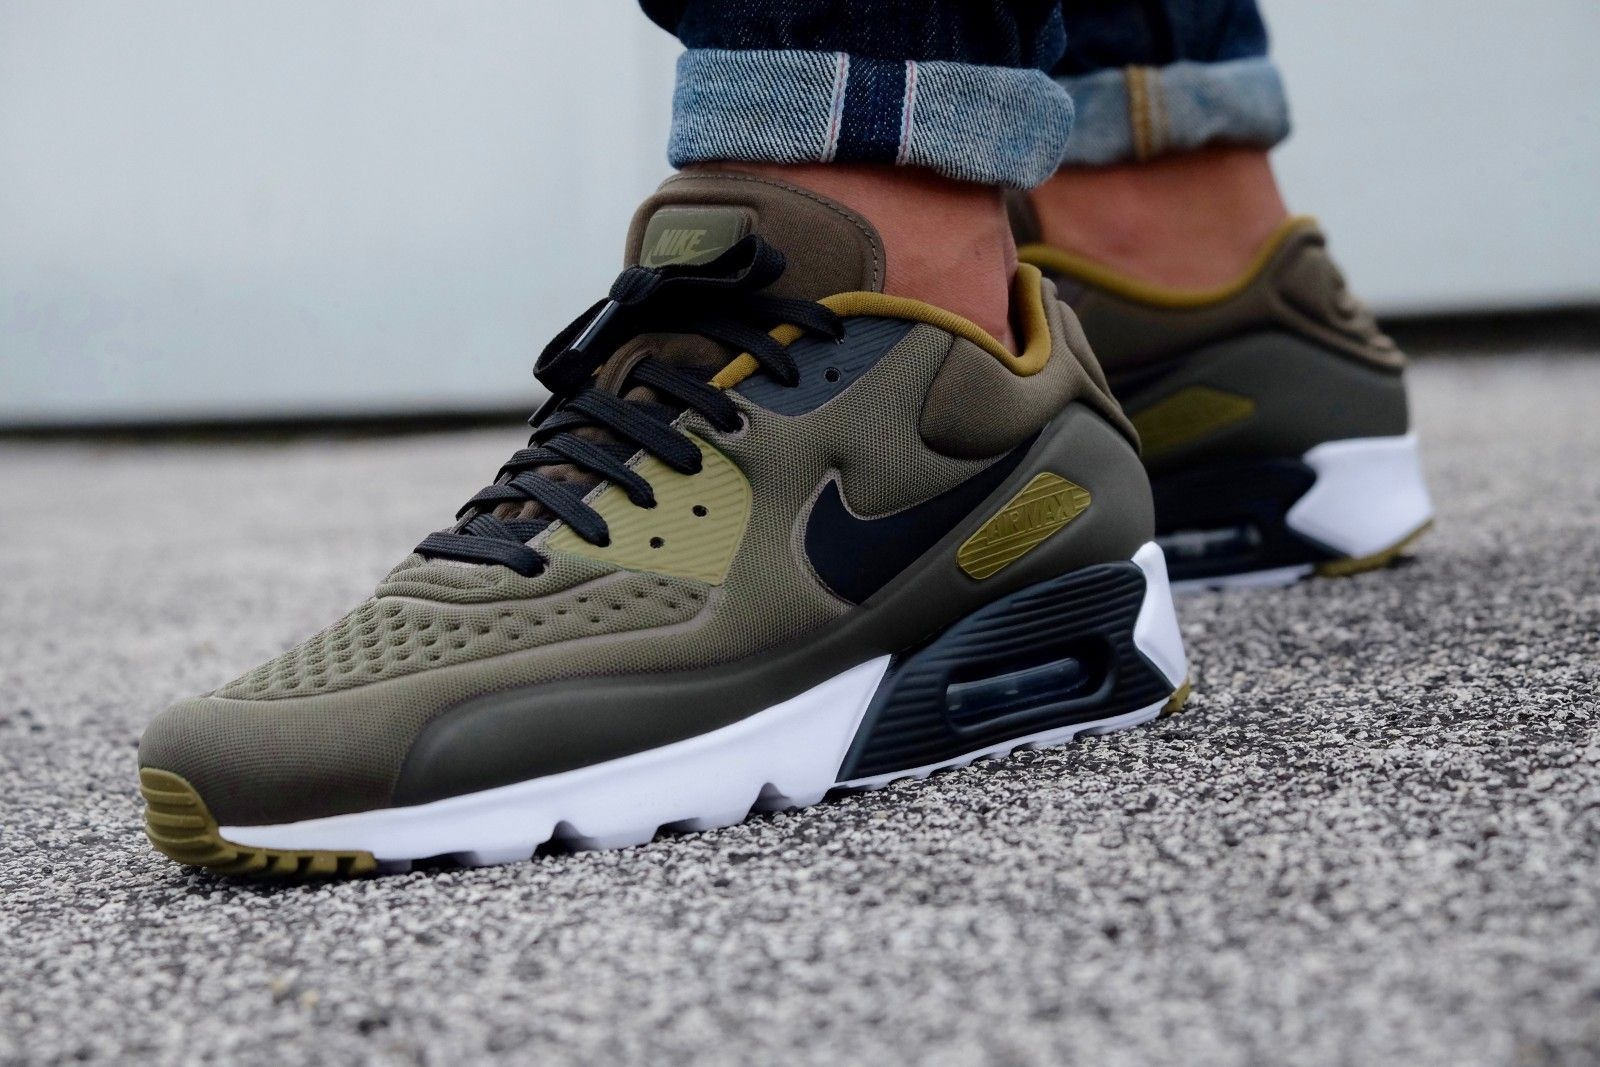 Nike Air Max 90 Ultra Special Edition Cargo Khaki/ Black ...